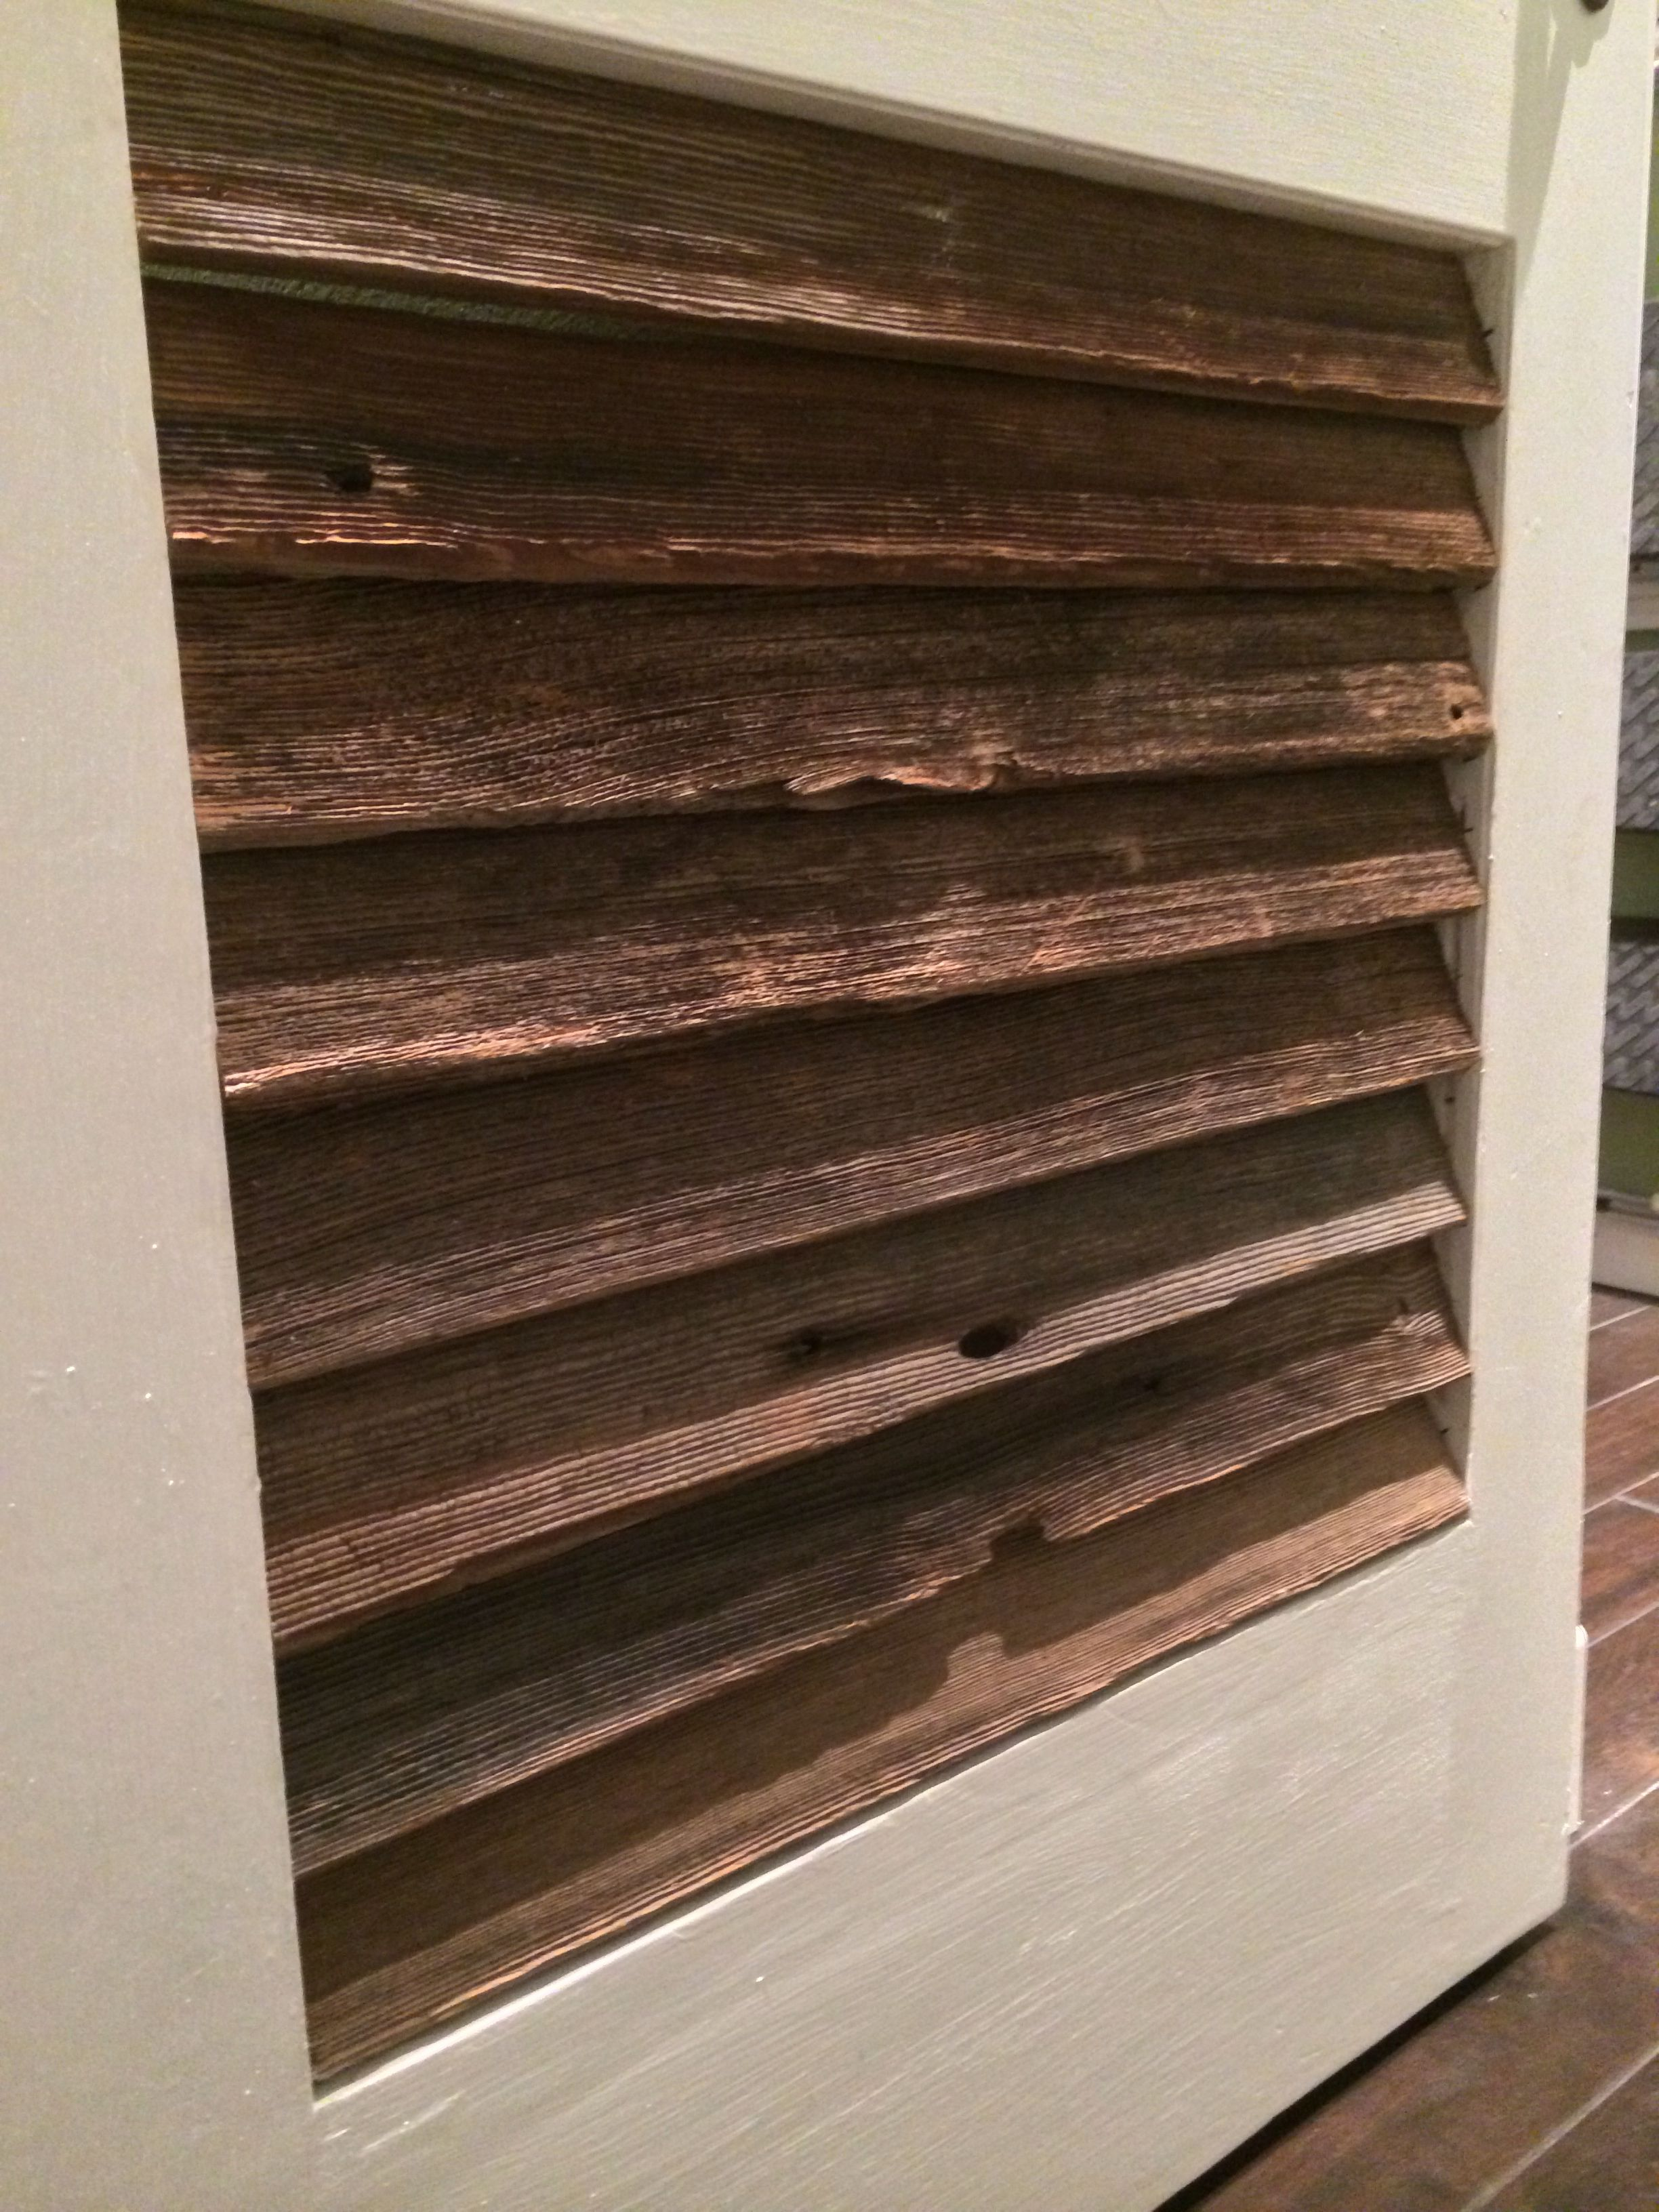 Barn Door For Kitchen Weathered Barn Wood Louvers On Sliding Barn Door For Kitchen